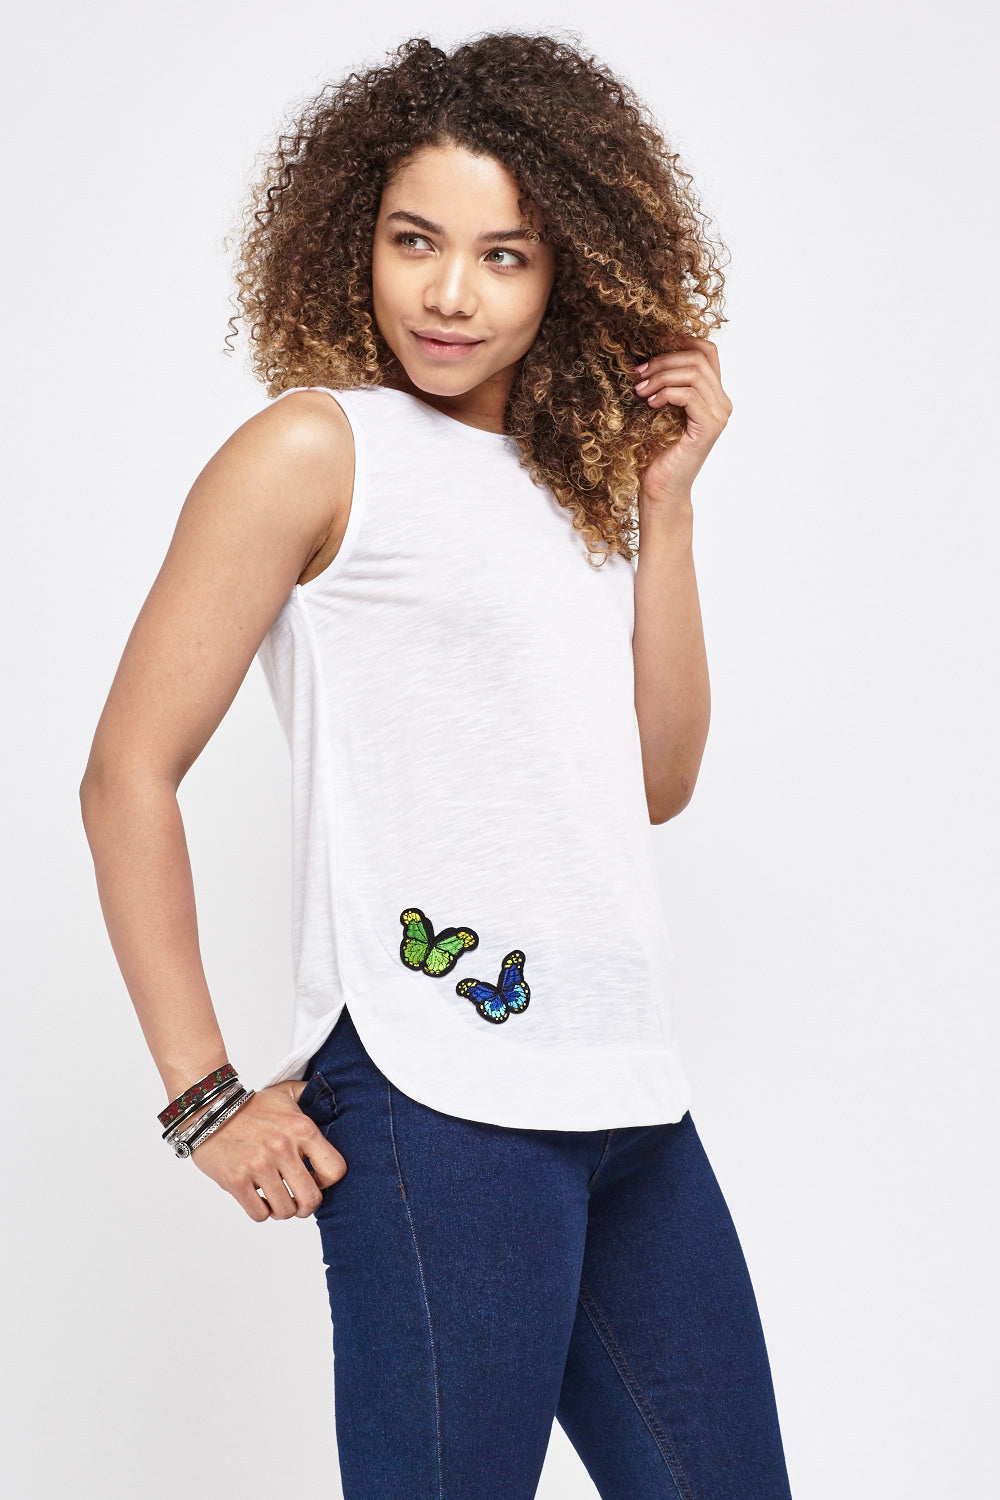 Francesca Butterfly Embroidery Applique Top - woven-trends